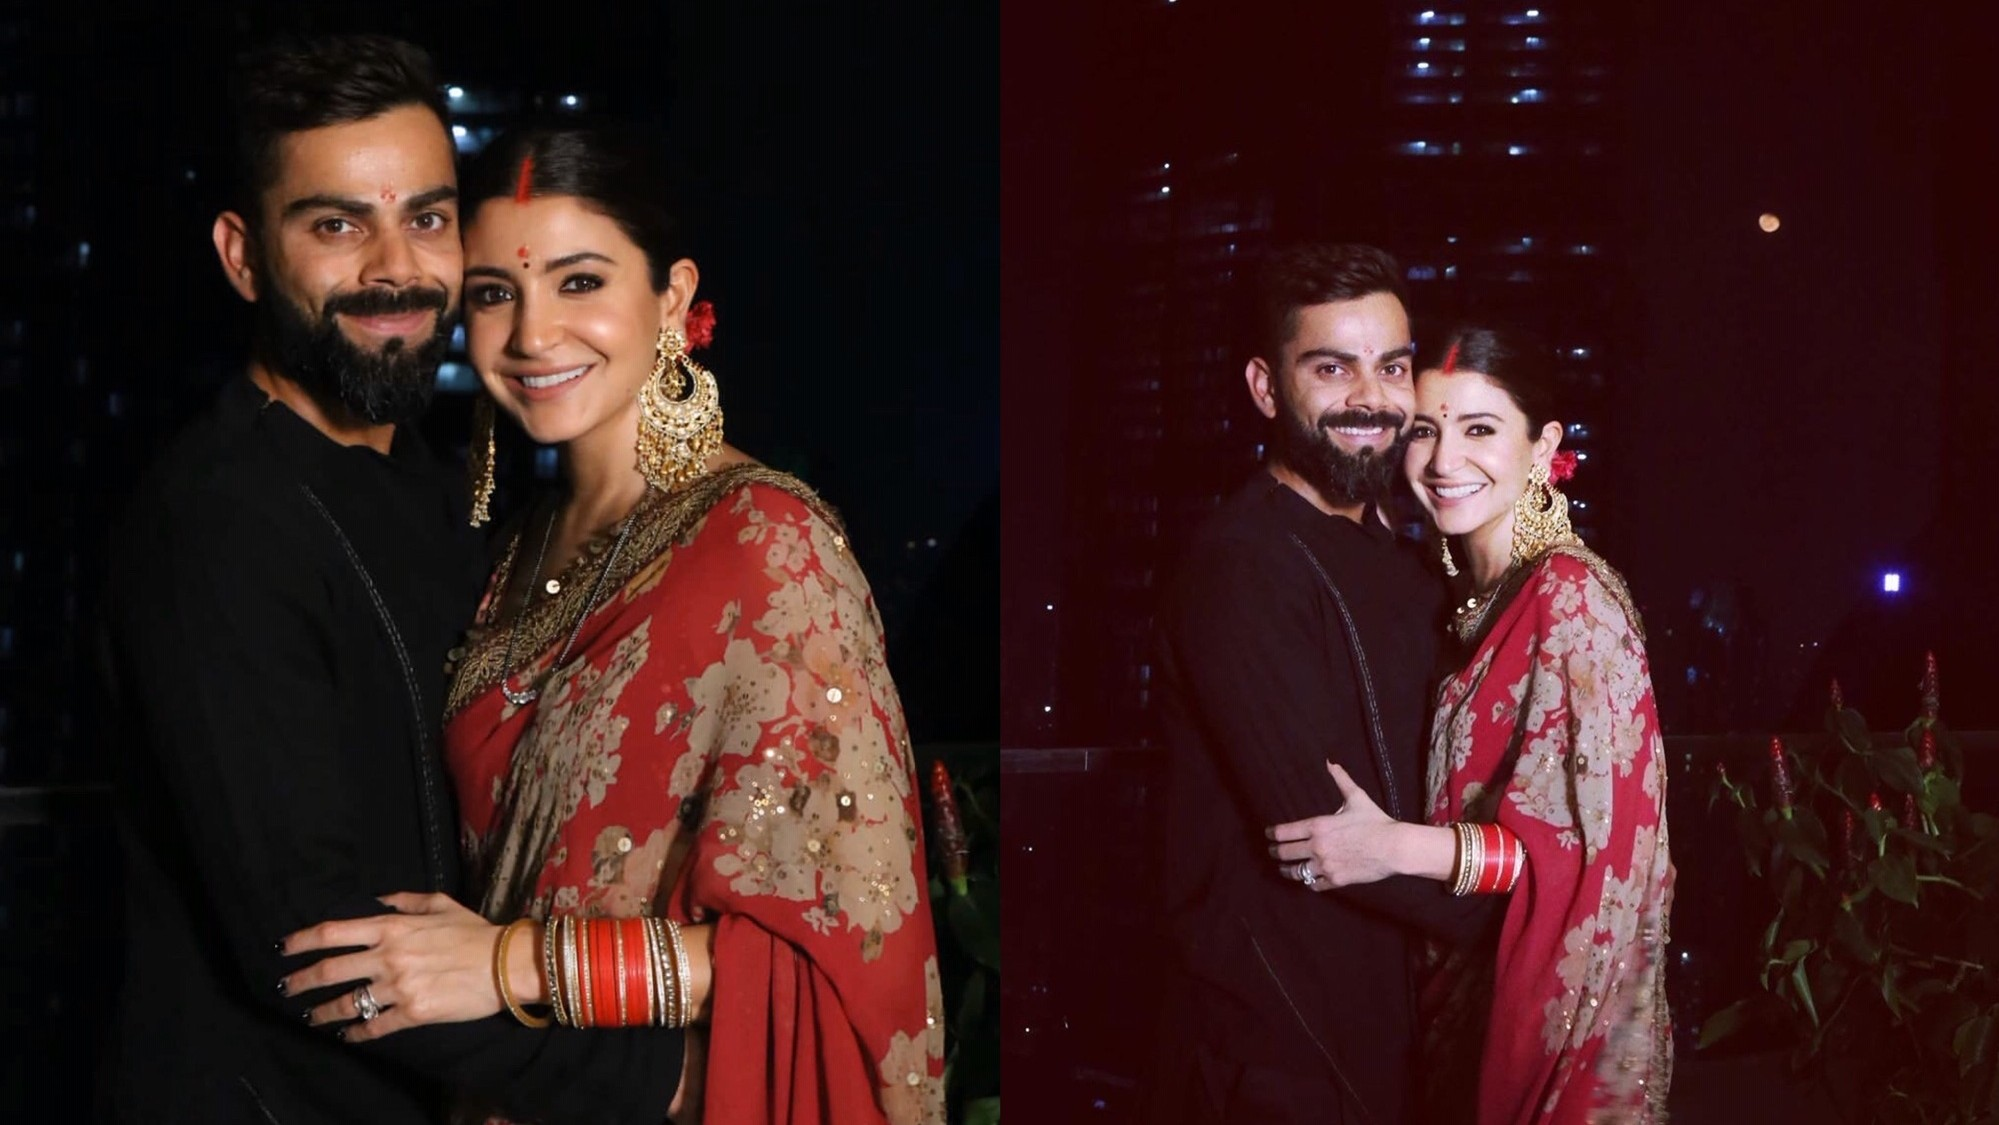 Virat Kohli and Anushka Sharma celebrate Karva Chauth by fasting together